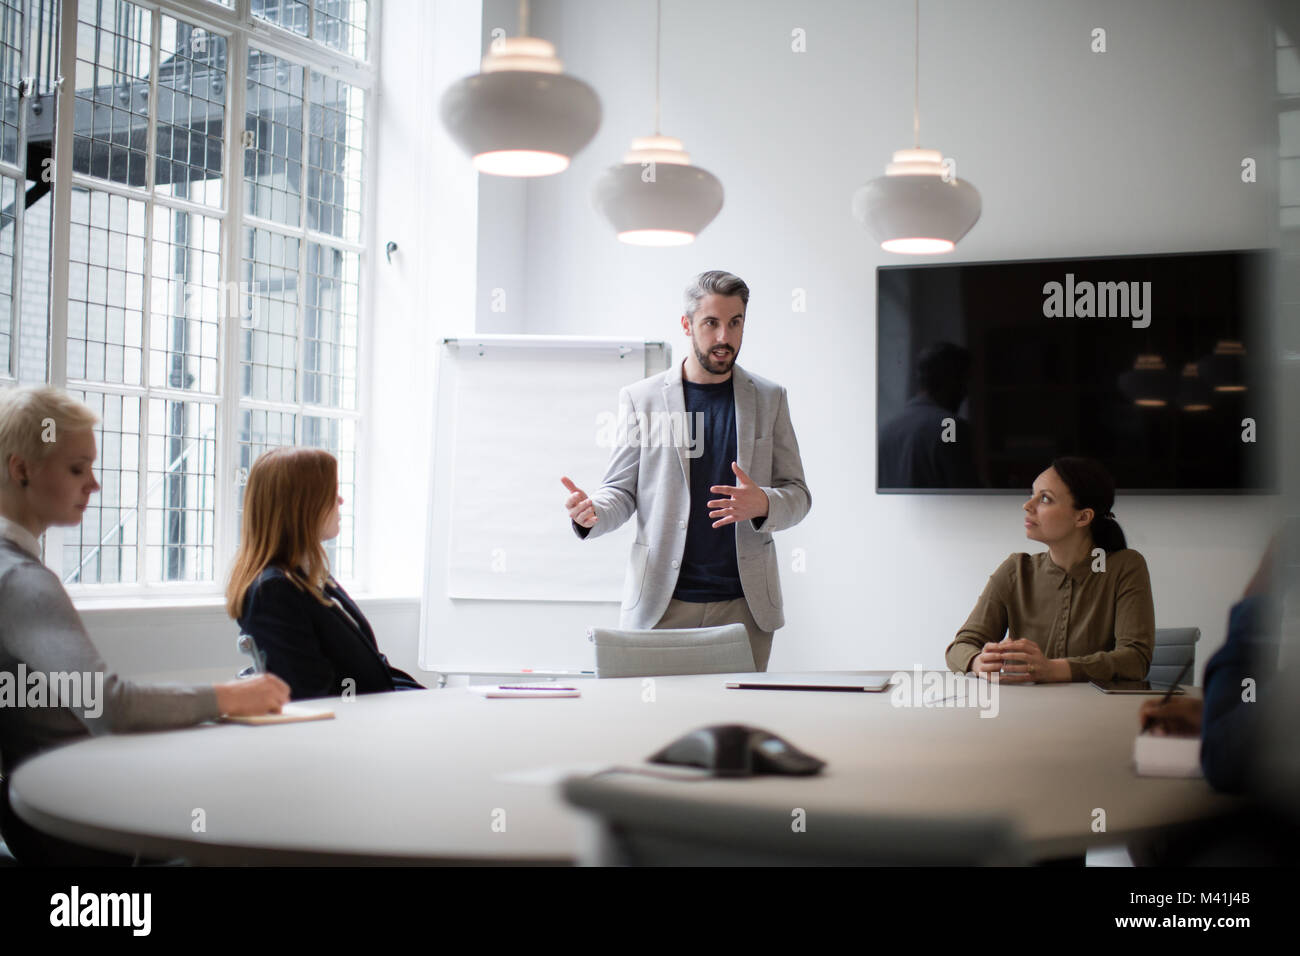 Male business executive giving a presentation - Stock Image